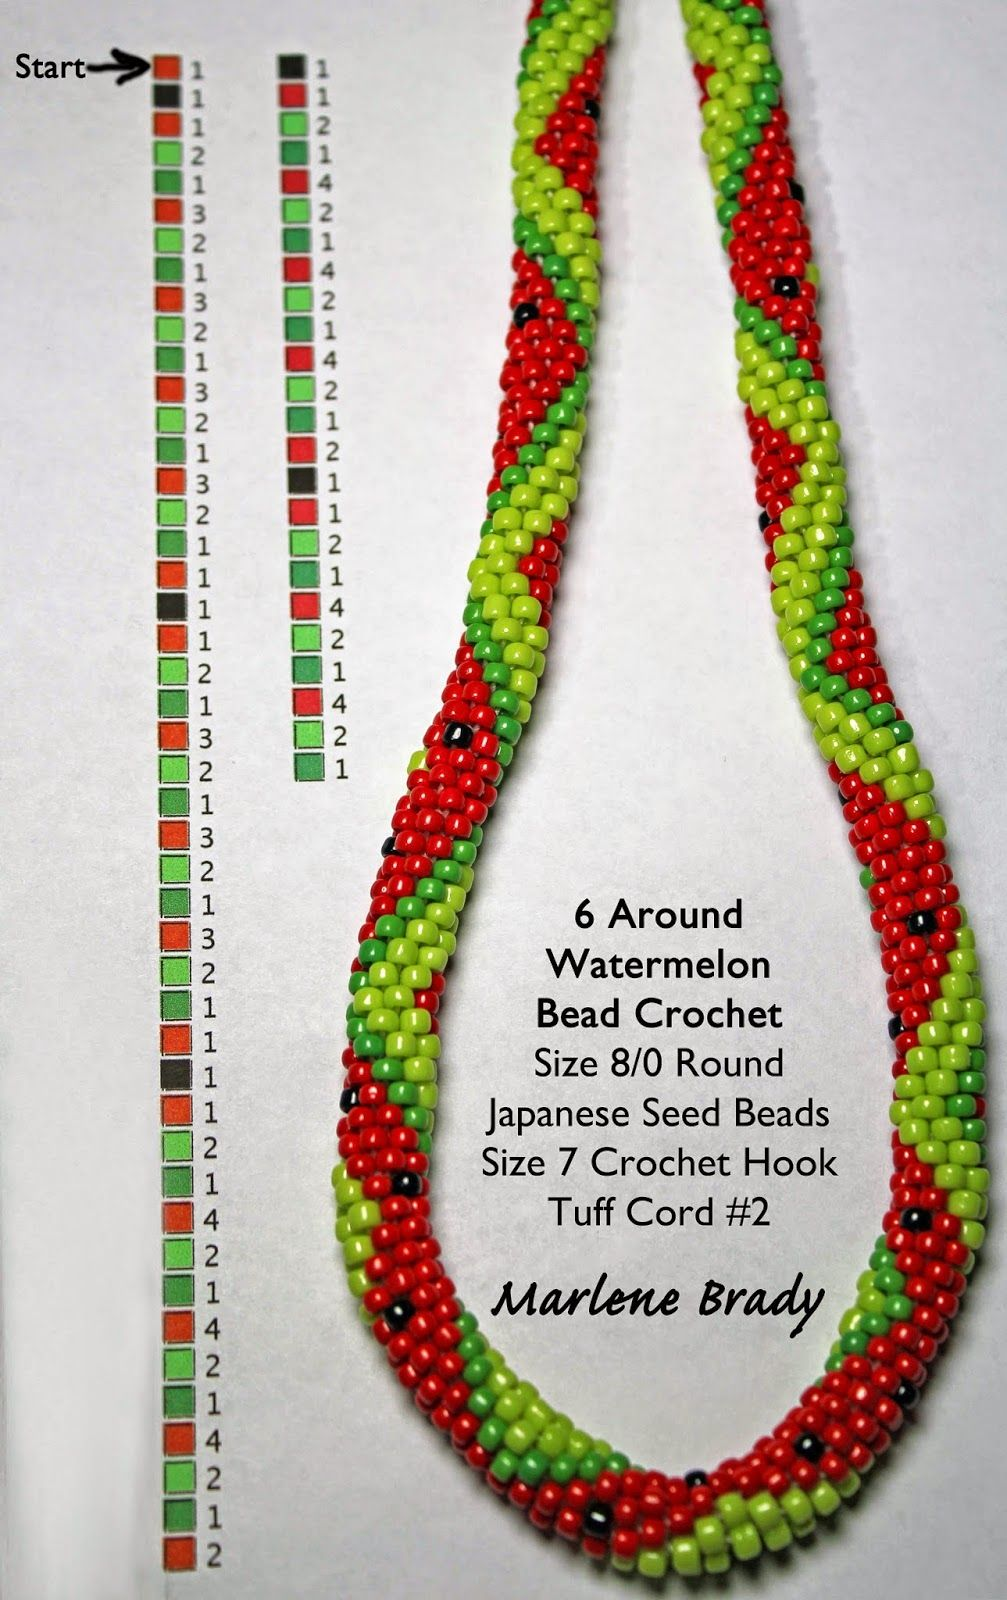 Marlene Brady: Watermelon Pattern 6 around | bead crochet ...